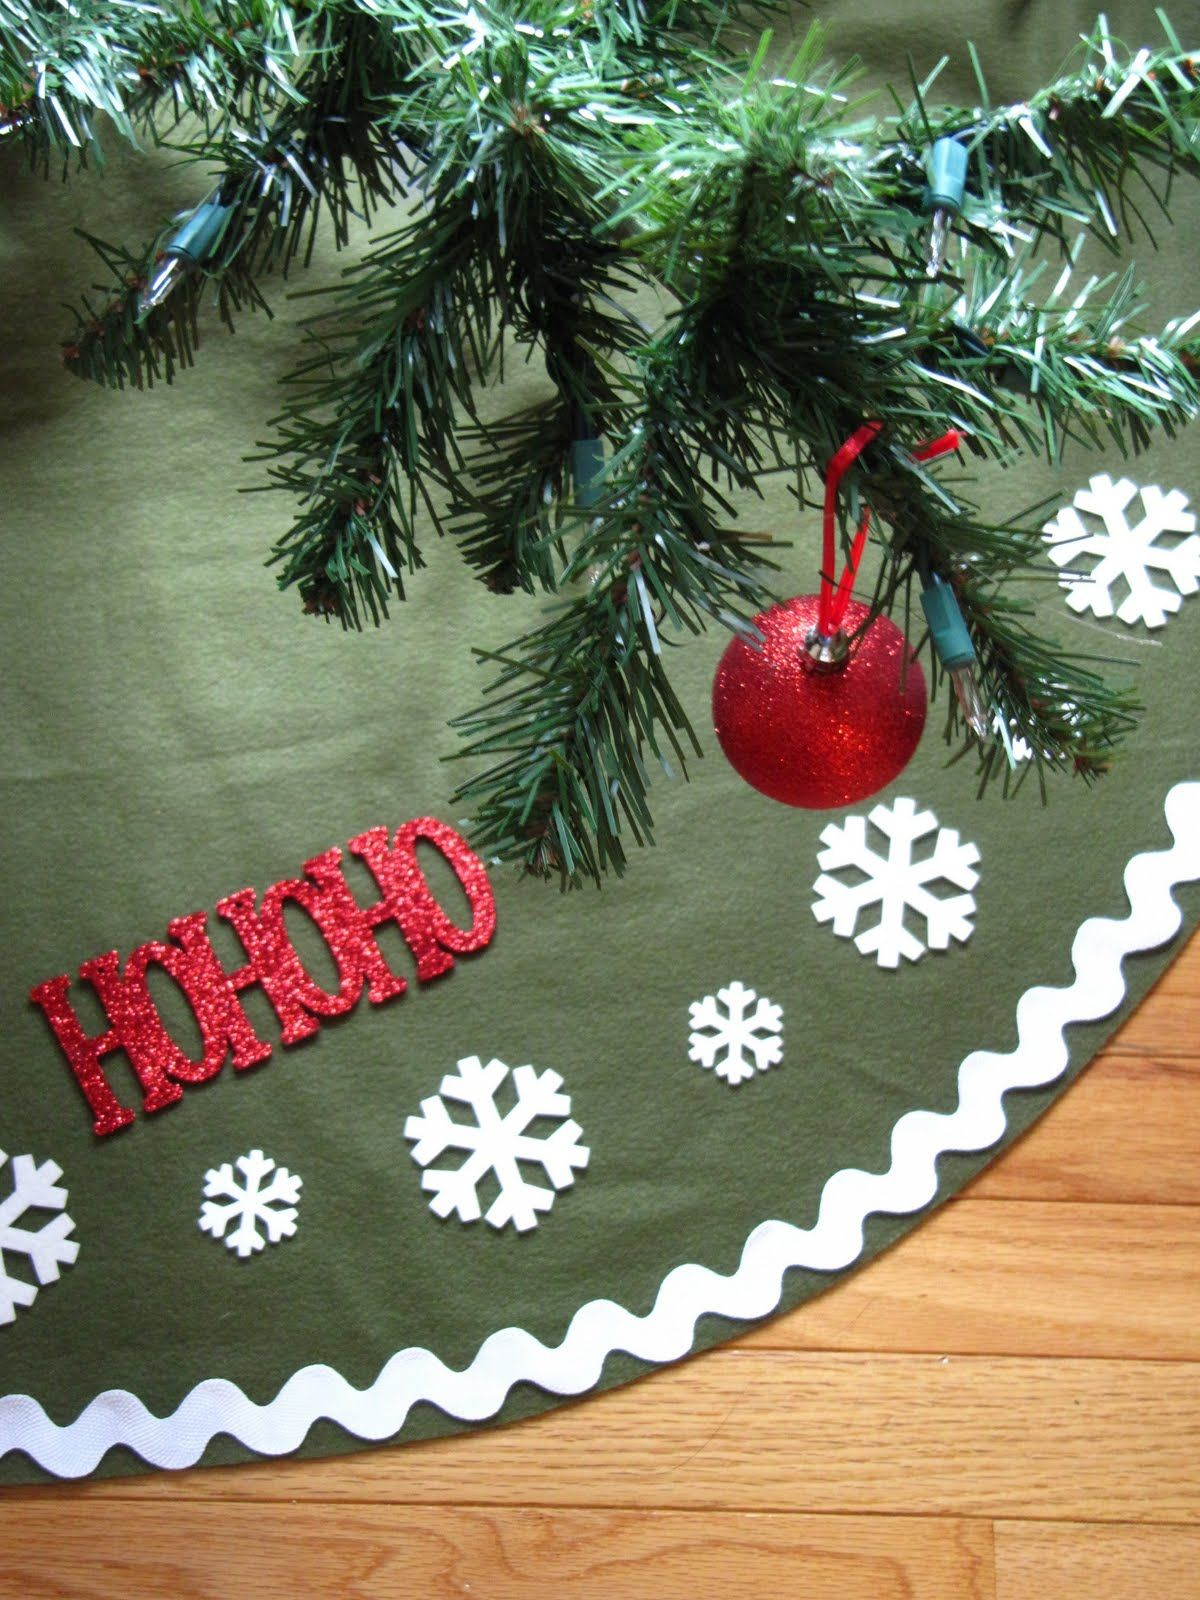 Sew Many Ways...: Tool Time Tuesday...No Sew Tree Skirt for $2.50 ...